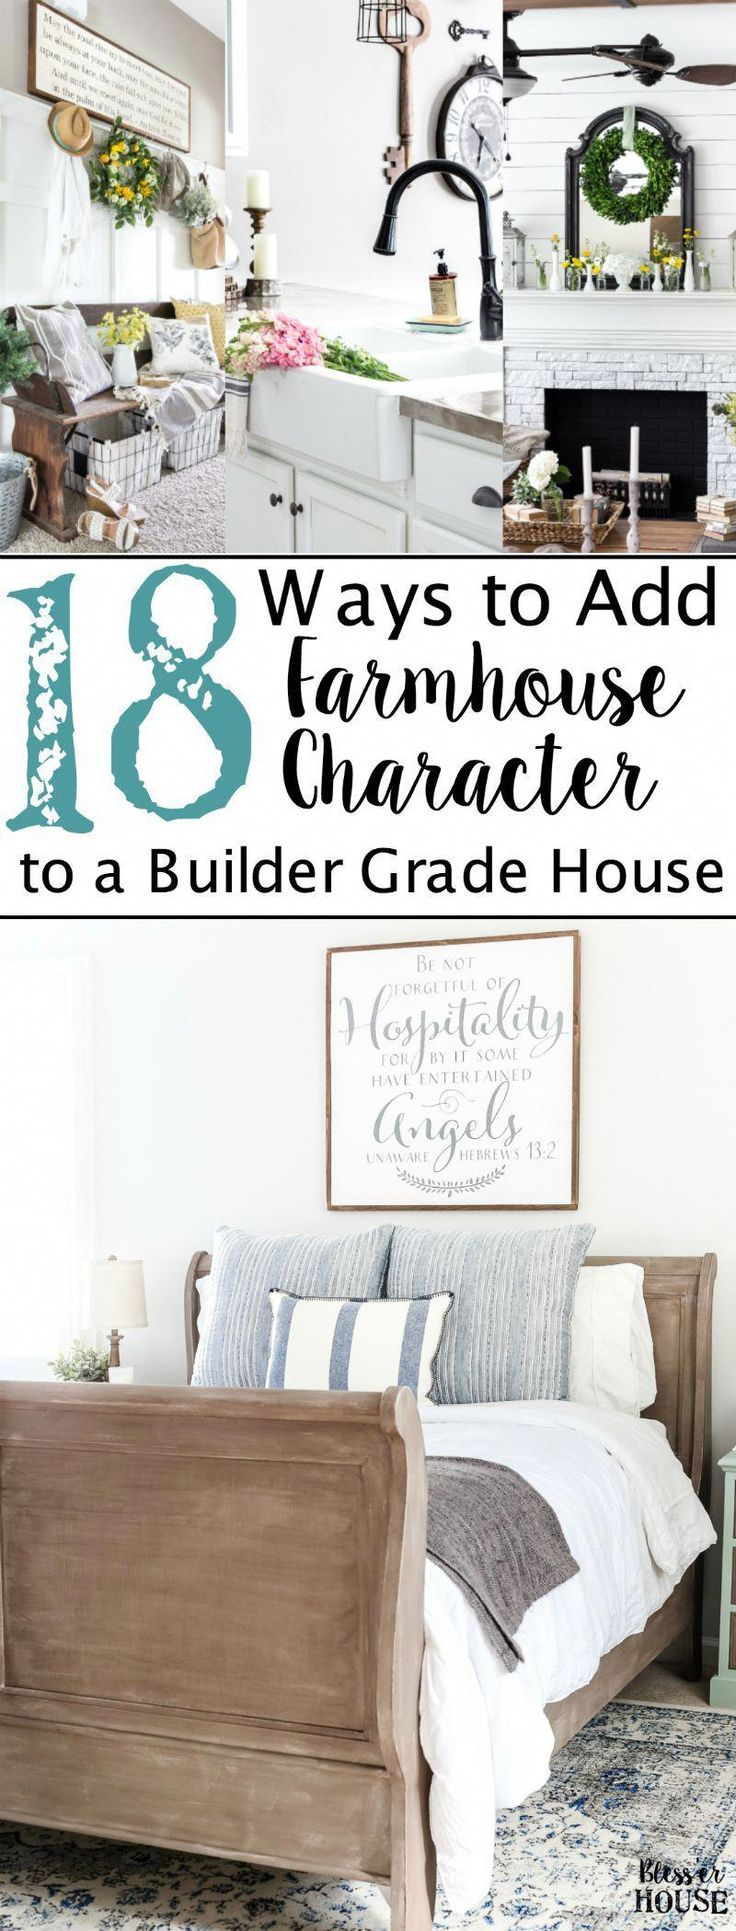 18 Ways to Add Farmhouse Character to a Builder Grade House